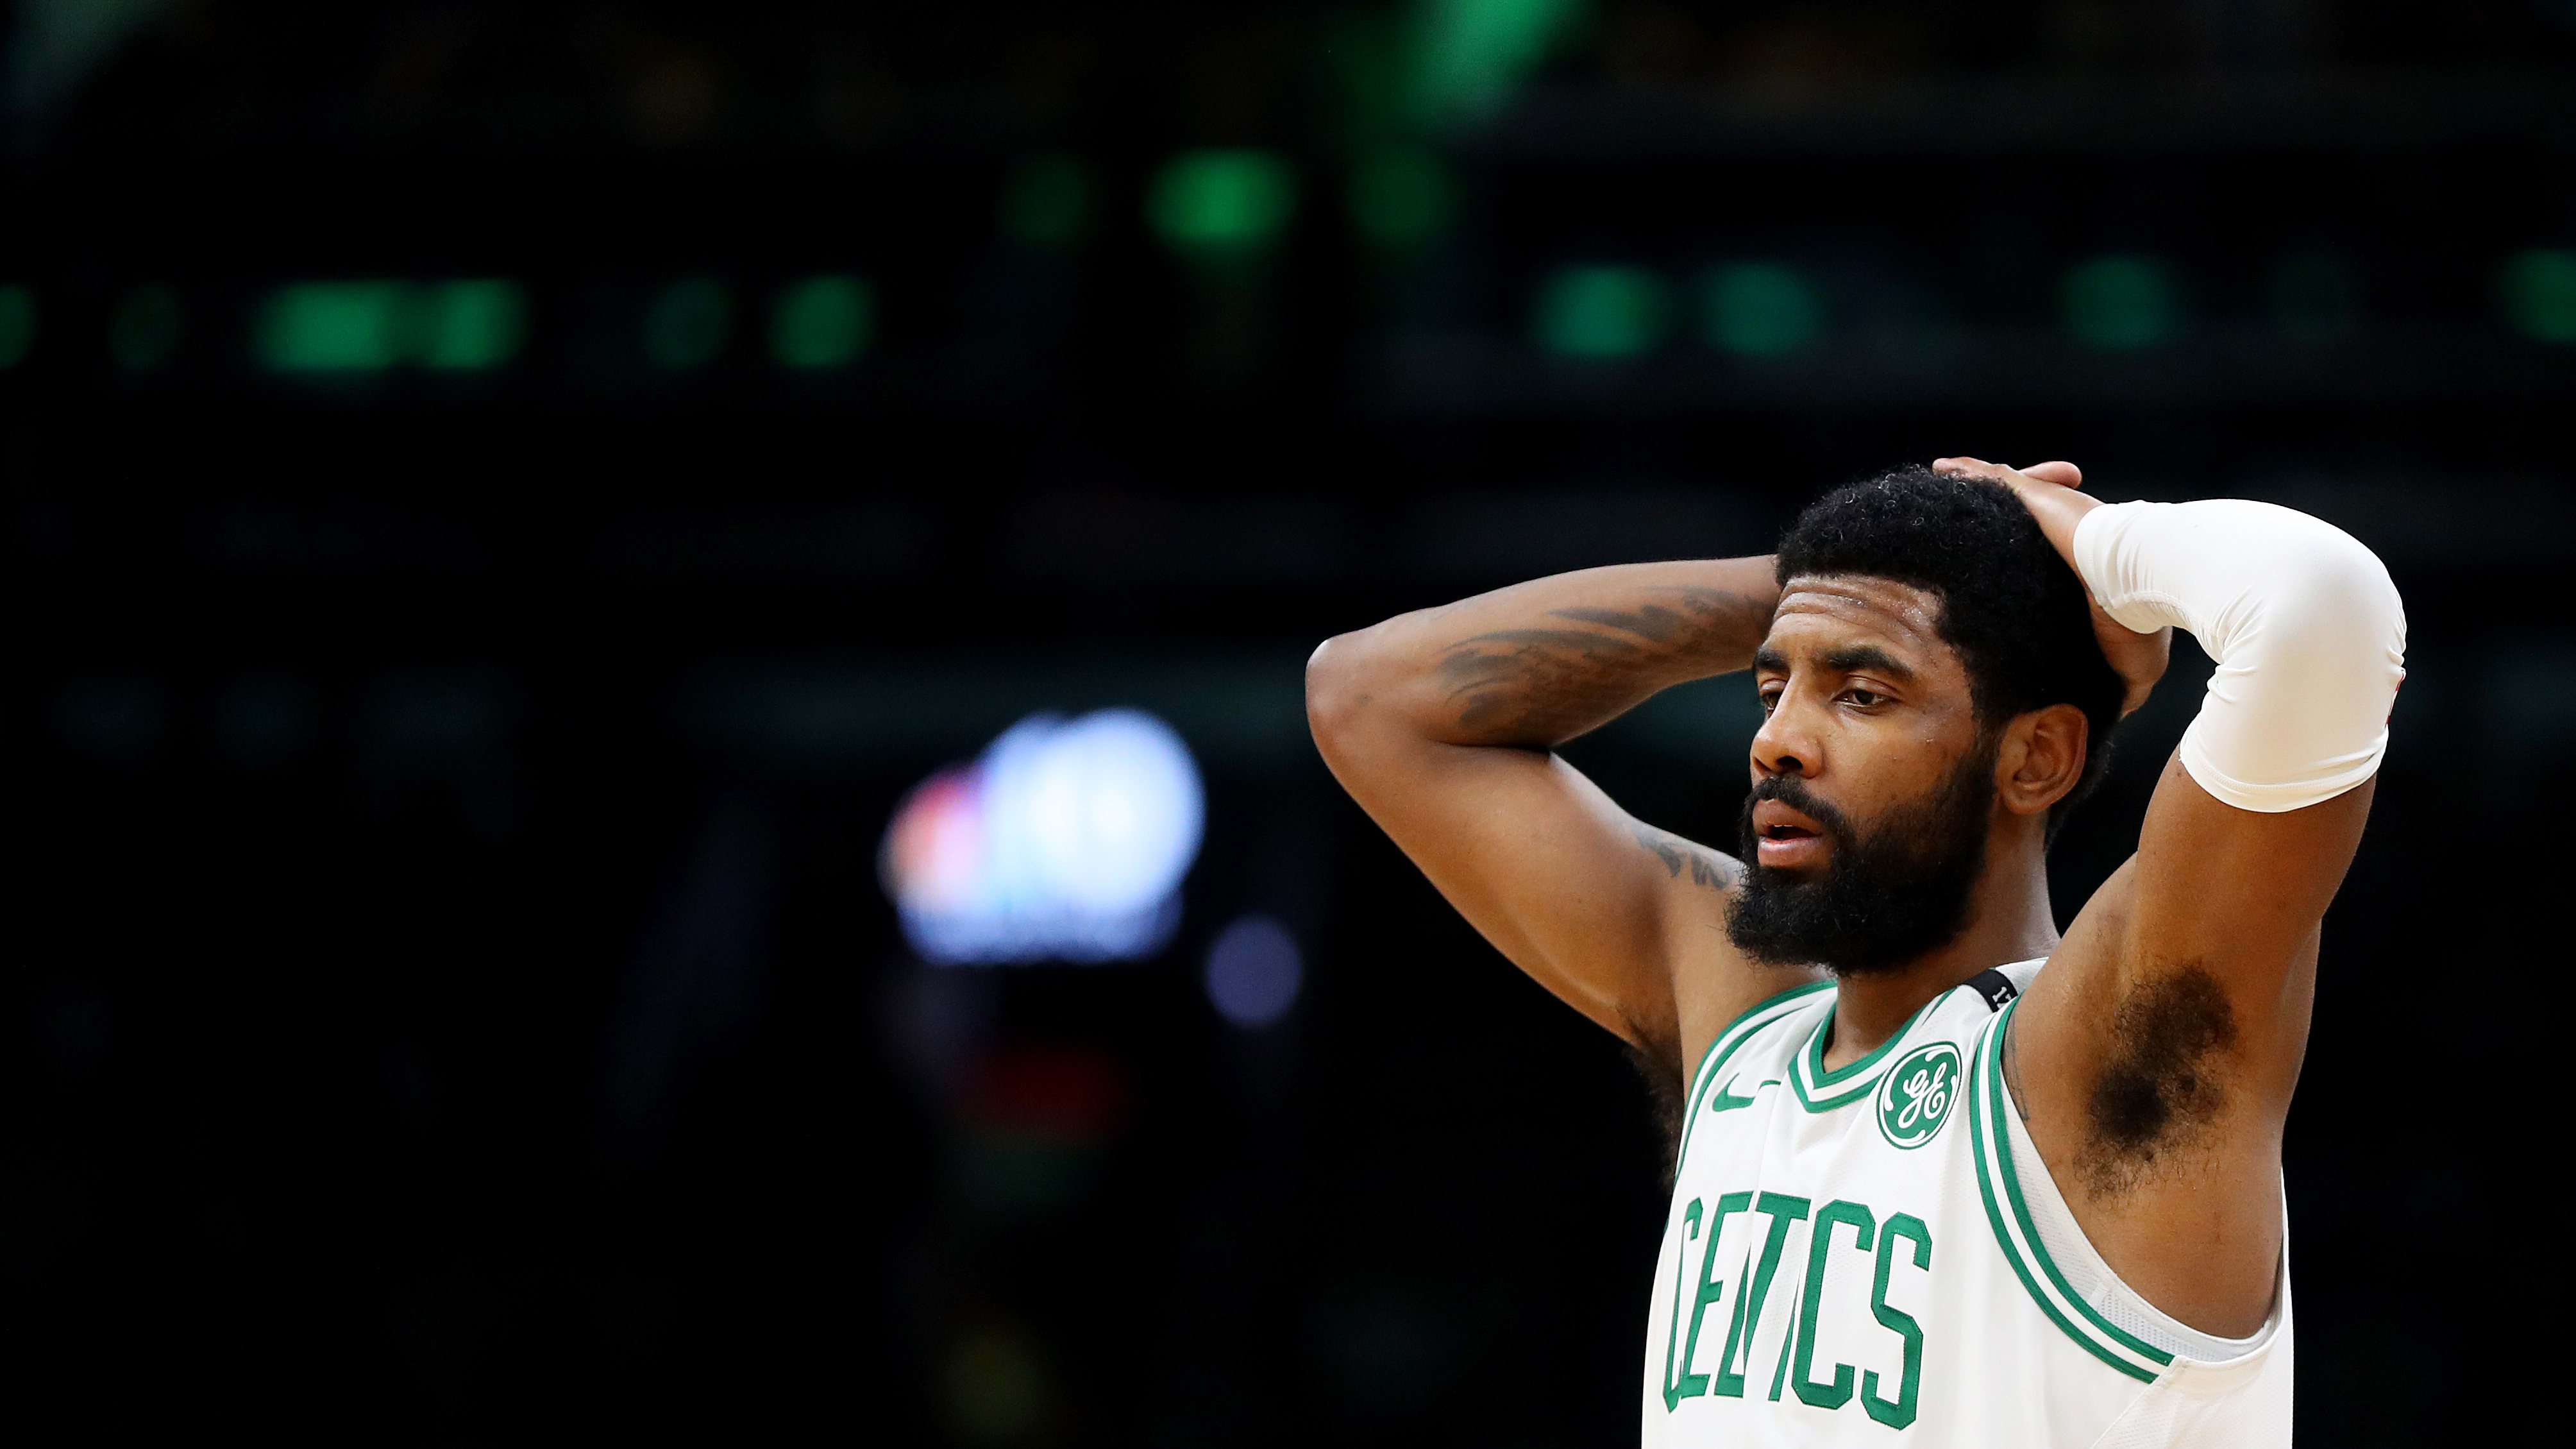 BOSTON, MASSACHUSETTS - MAY 03: Kyrie Irving #11 of the Boston Celtics reacts during the second half of Game 3 of the Eastern Conference Semifinals against the Milwaukee Bucks during the 2019 NBA Playoffs at TD Garden on May 03, 2019 in Boston, Massachusetts. The Bucks defeat the Celtics 123 - 116.  (Photo by Maddie Meyer/Getty Images)